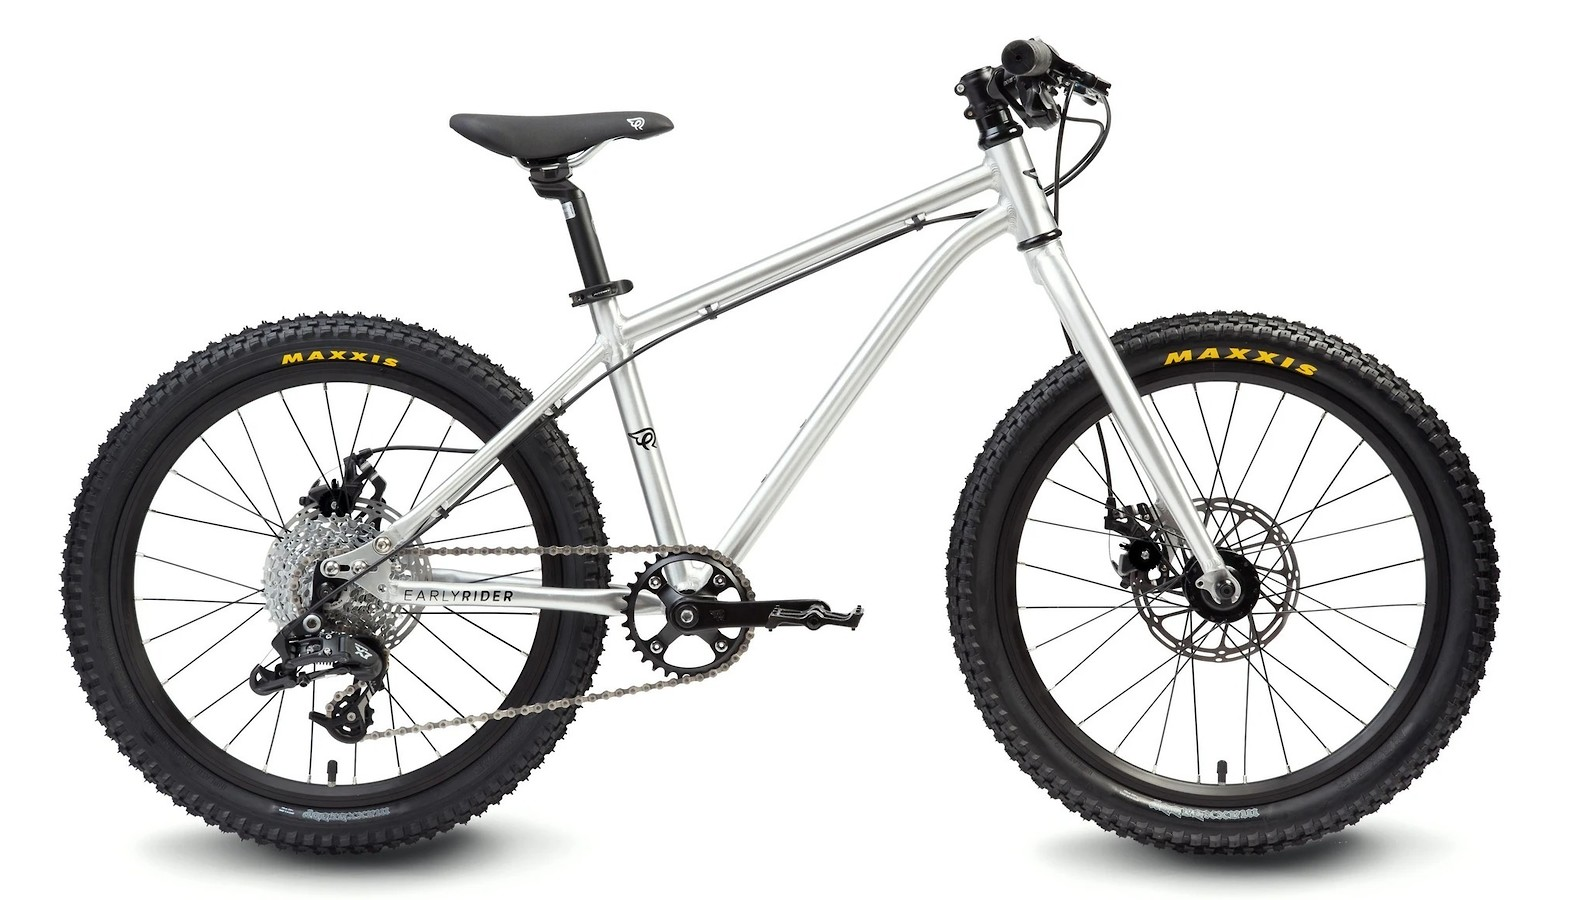 2020 Early Rider Trail 20